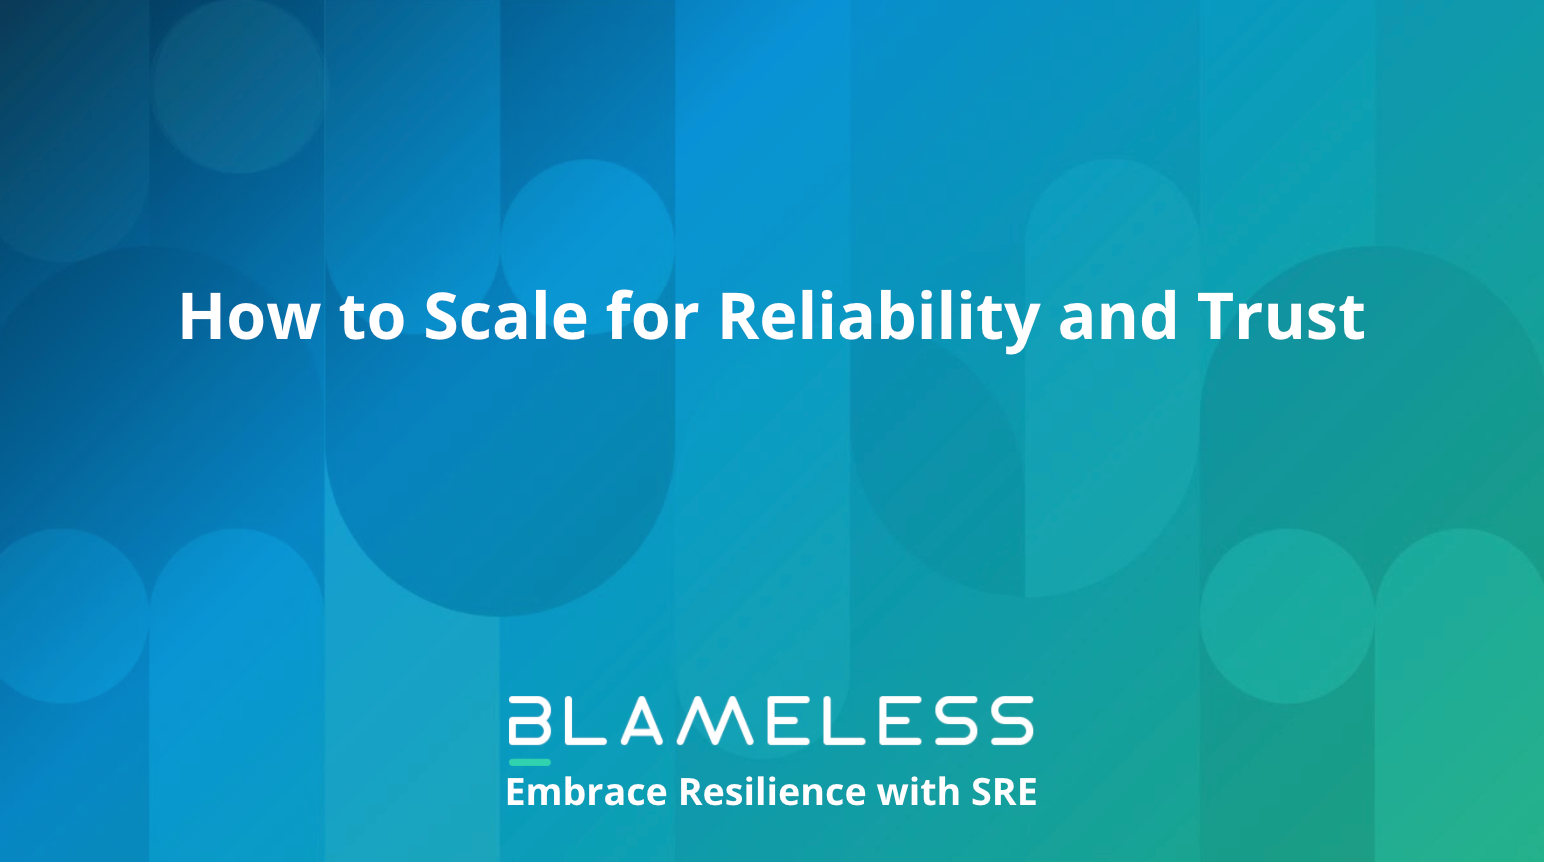 How to Scale for Reliability and Trust